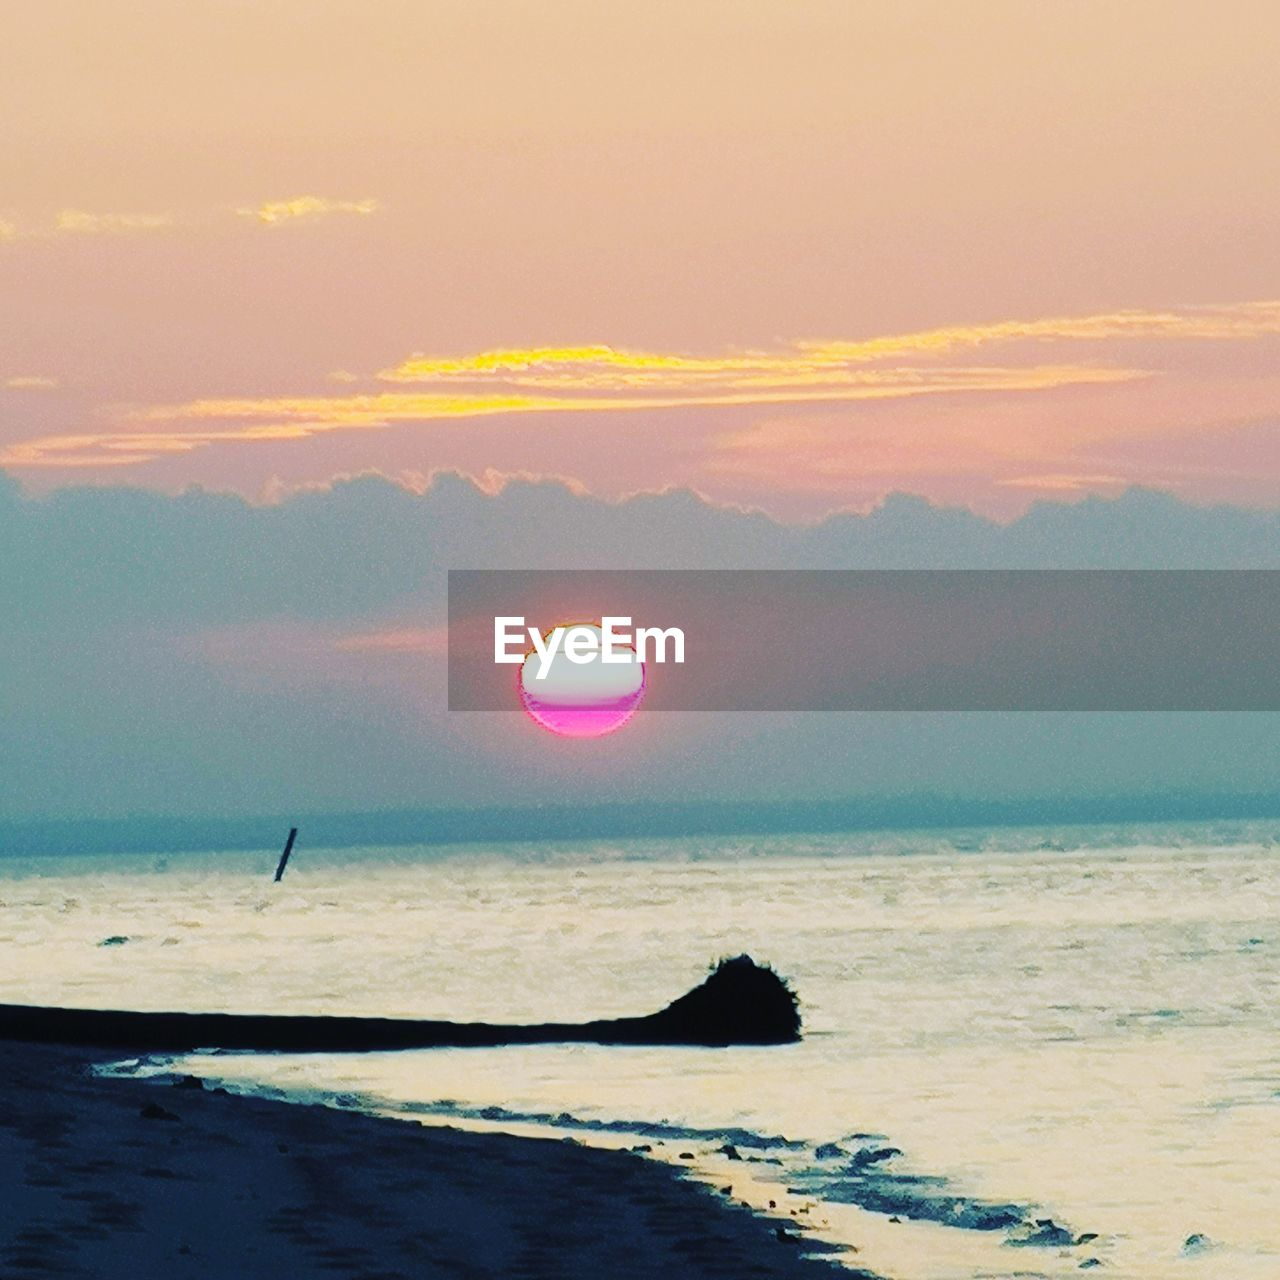 sky, sea, sunset, scenics - nature, beauty in nature, water, sun, cloud - sky, tranquility, tranquil scene, horizon over water, orange color, horizon, nature, idyllic, beach, silhouette, land, no people, outdoors